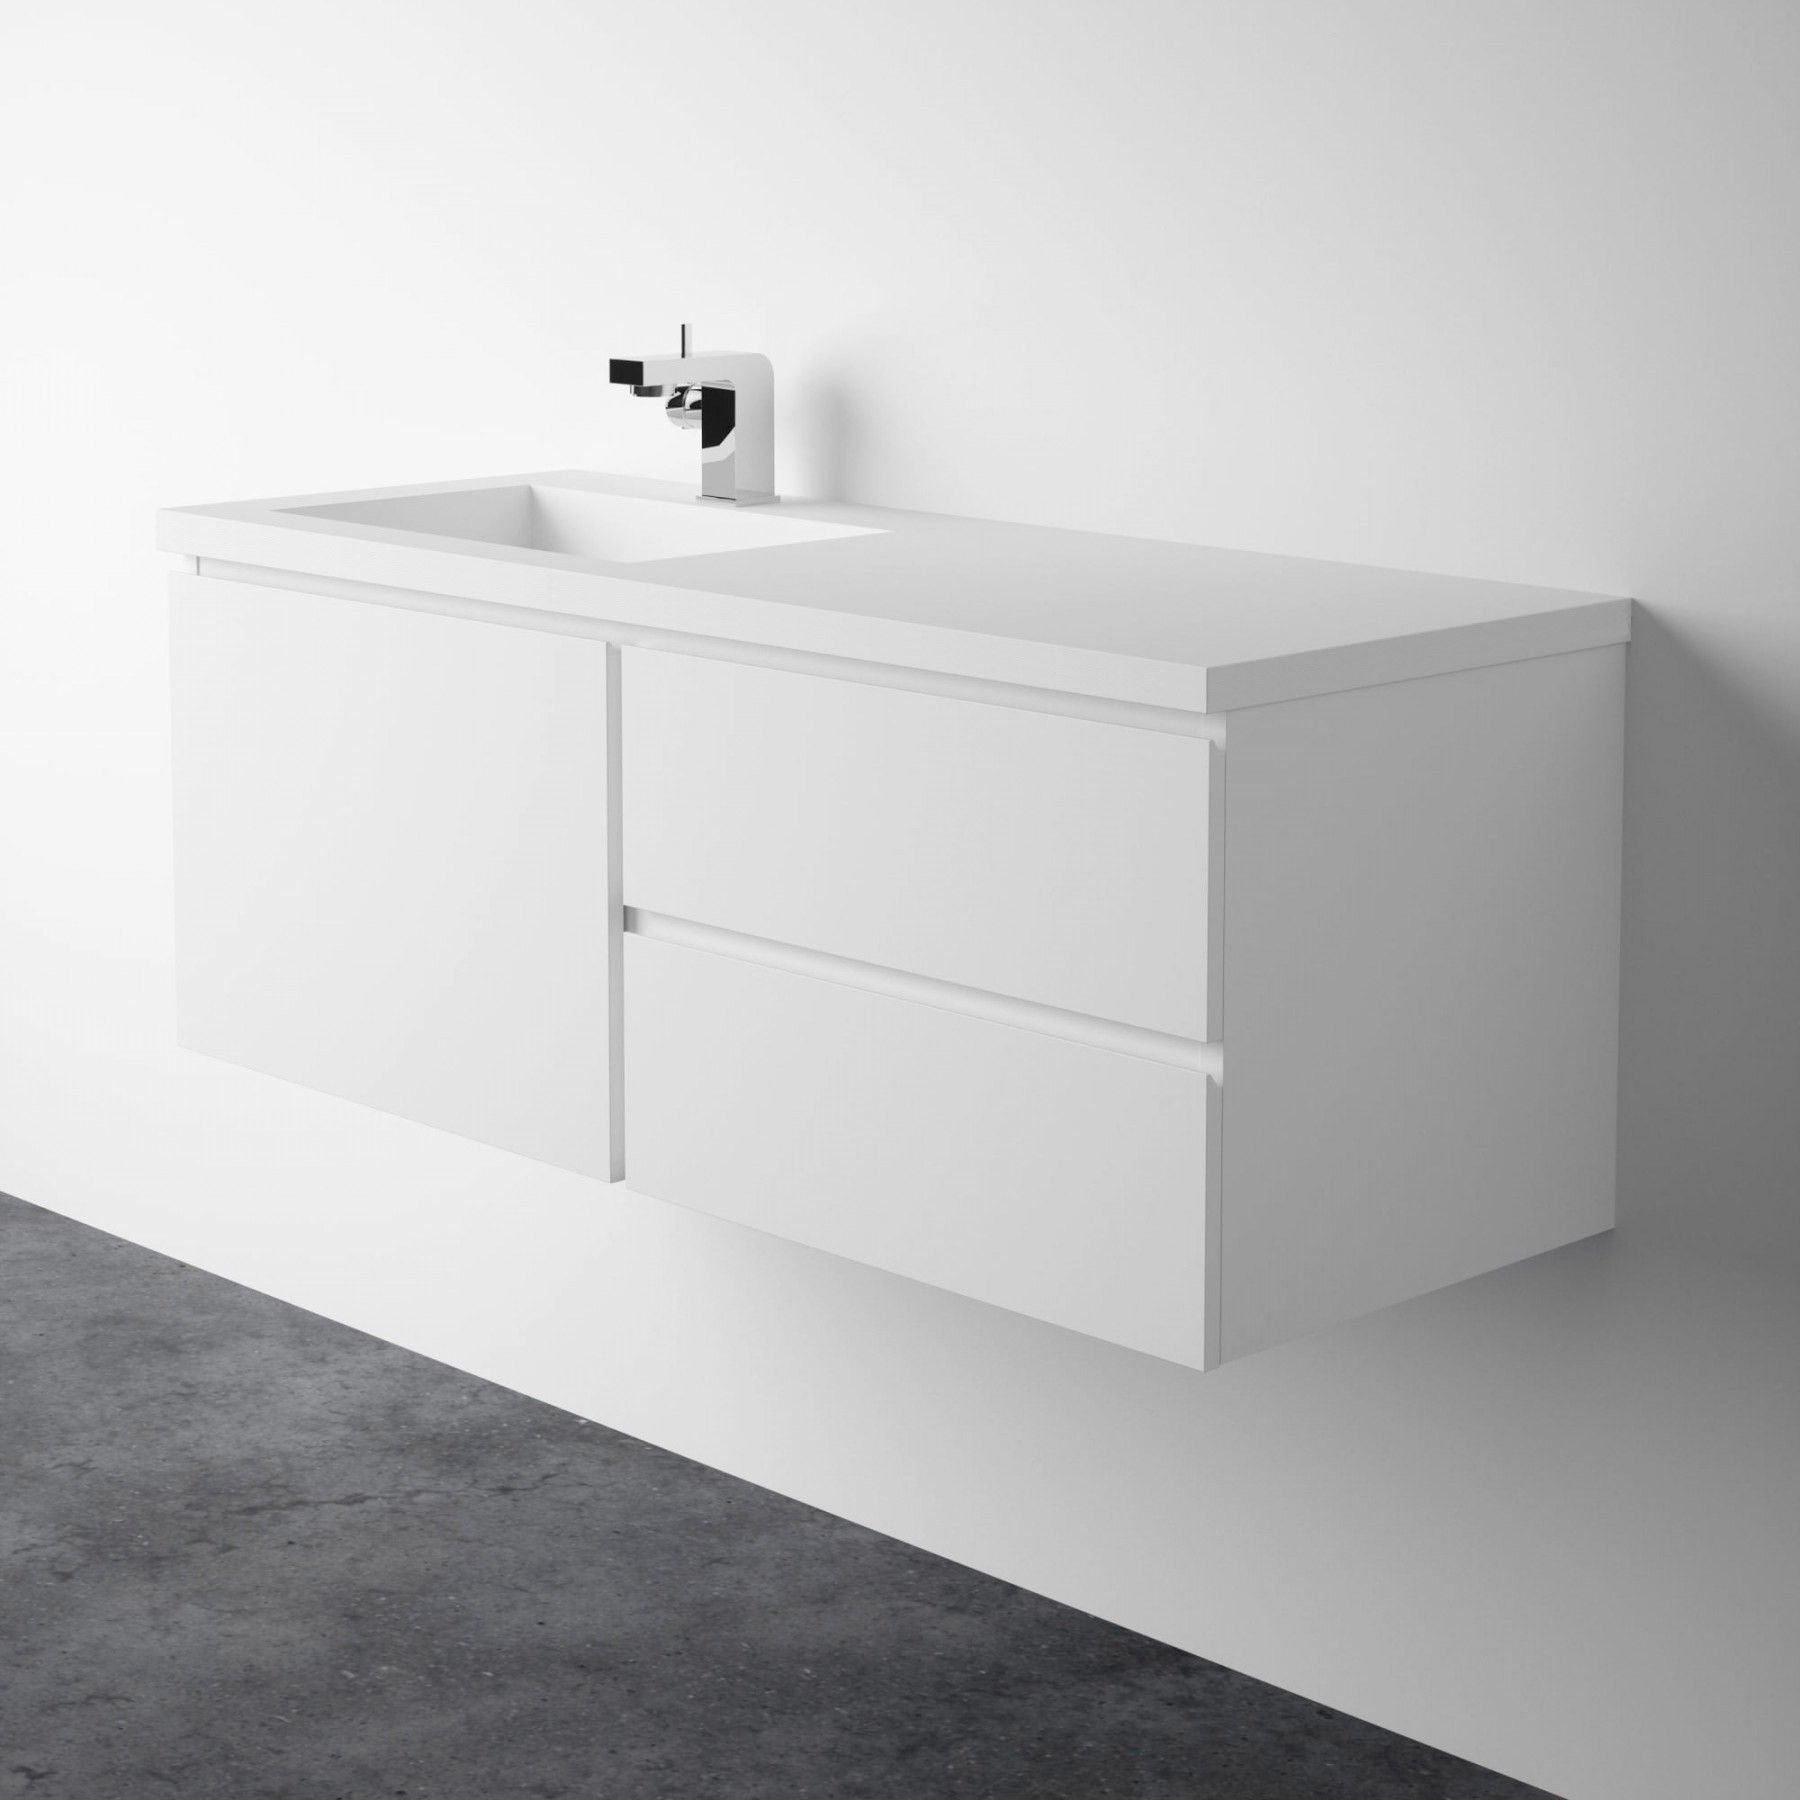 Bellissimo 1200mm Wall Mounted Gloss White Double Vanity Unit Basin Vanity Unit Vanity Units Double Vanity Unit